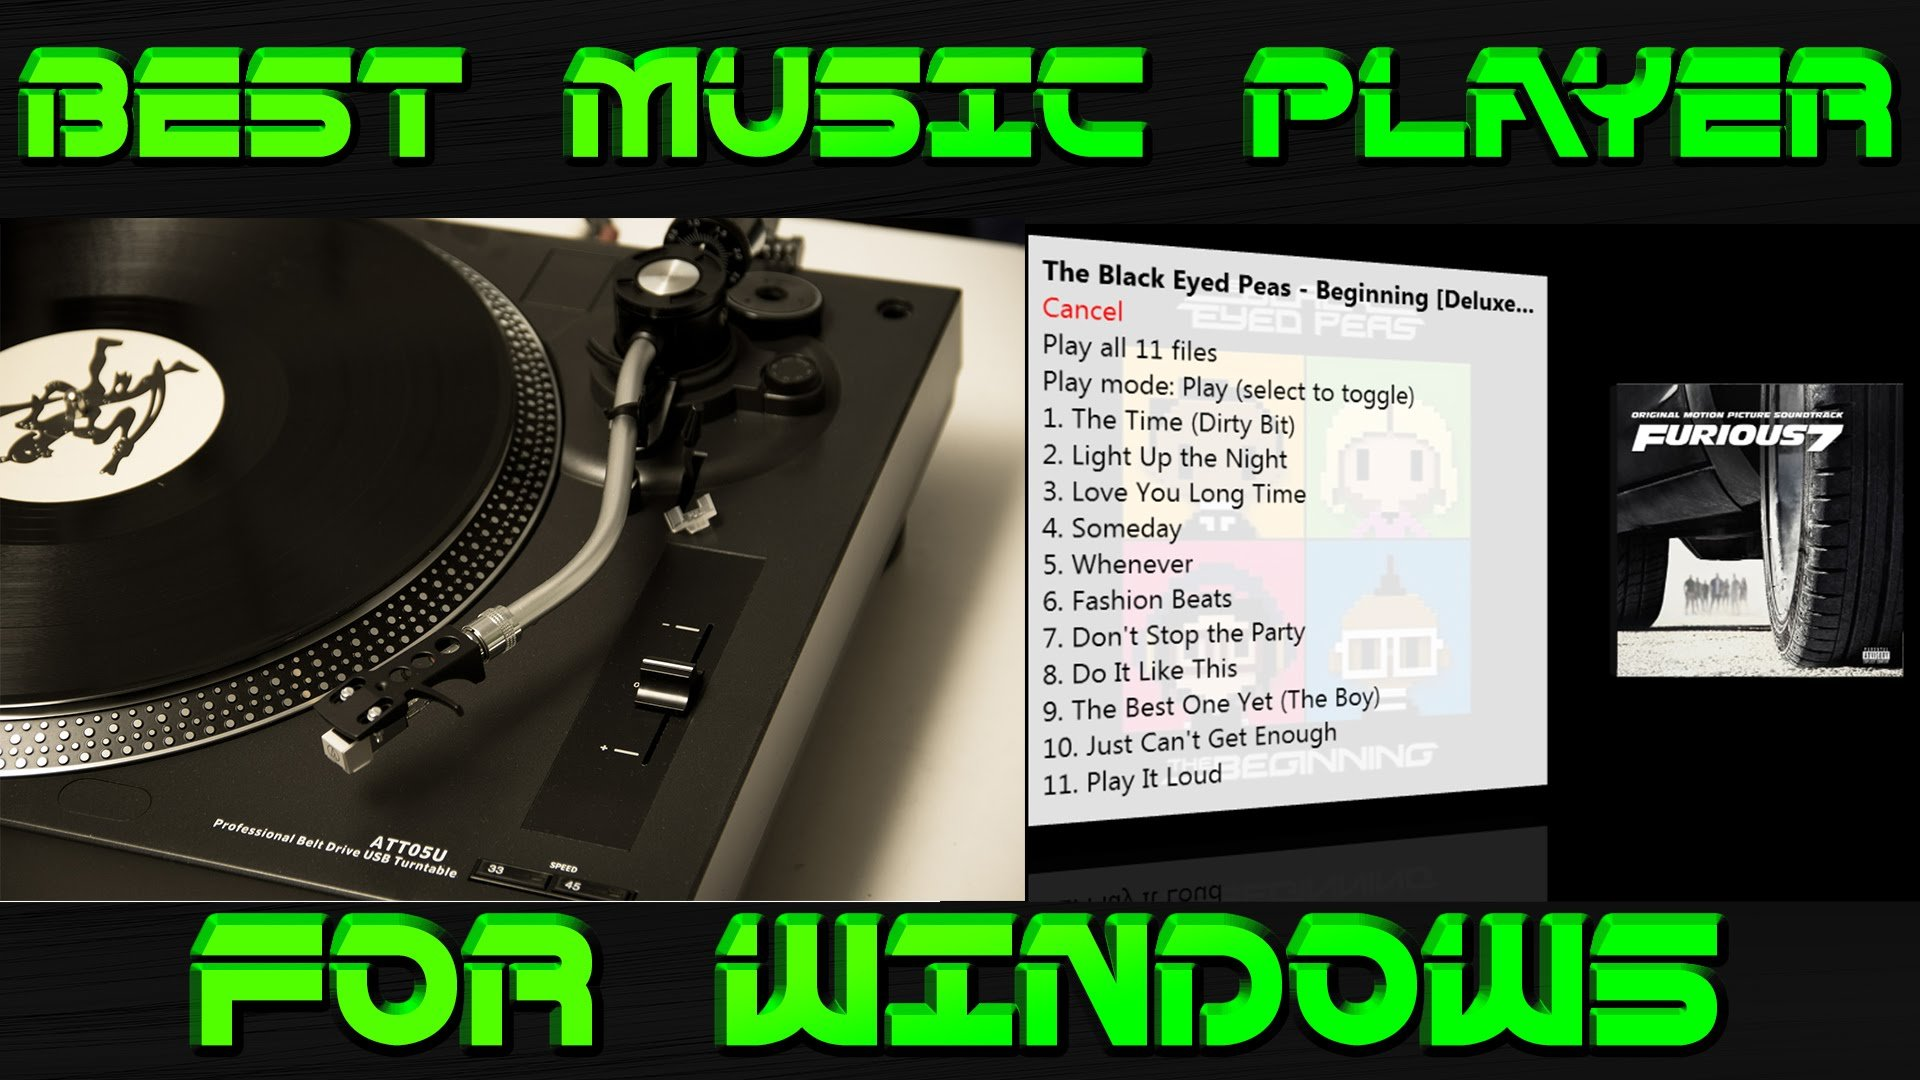 Best audio player for Windows 7